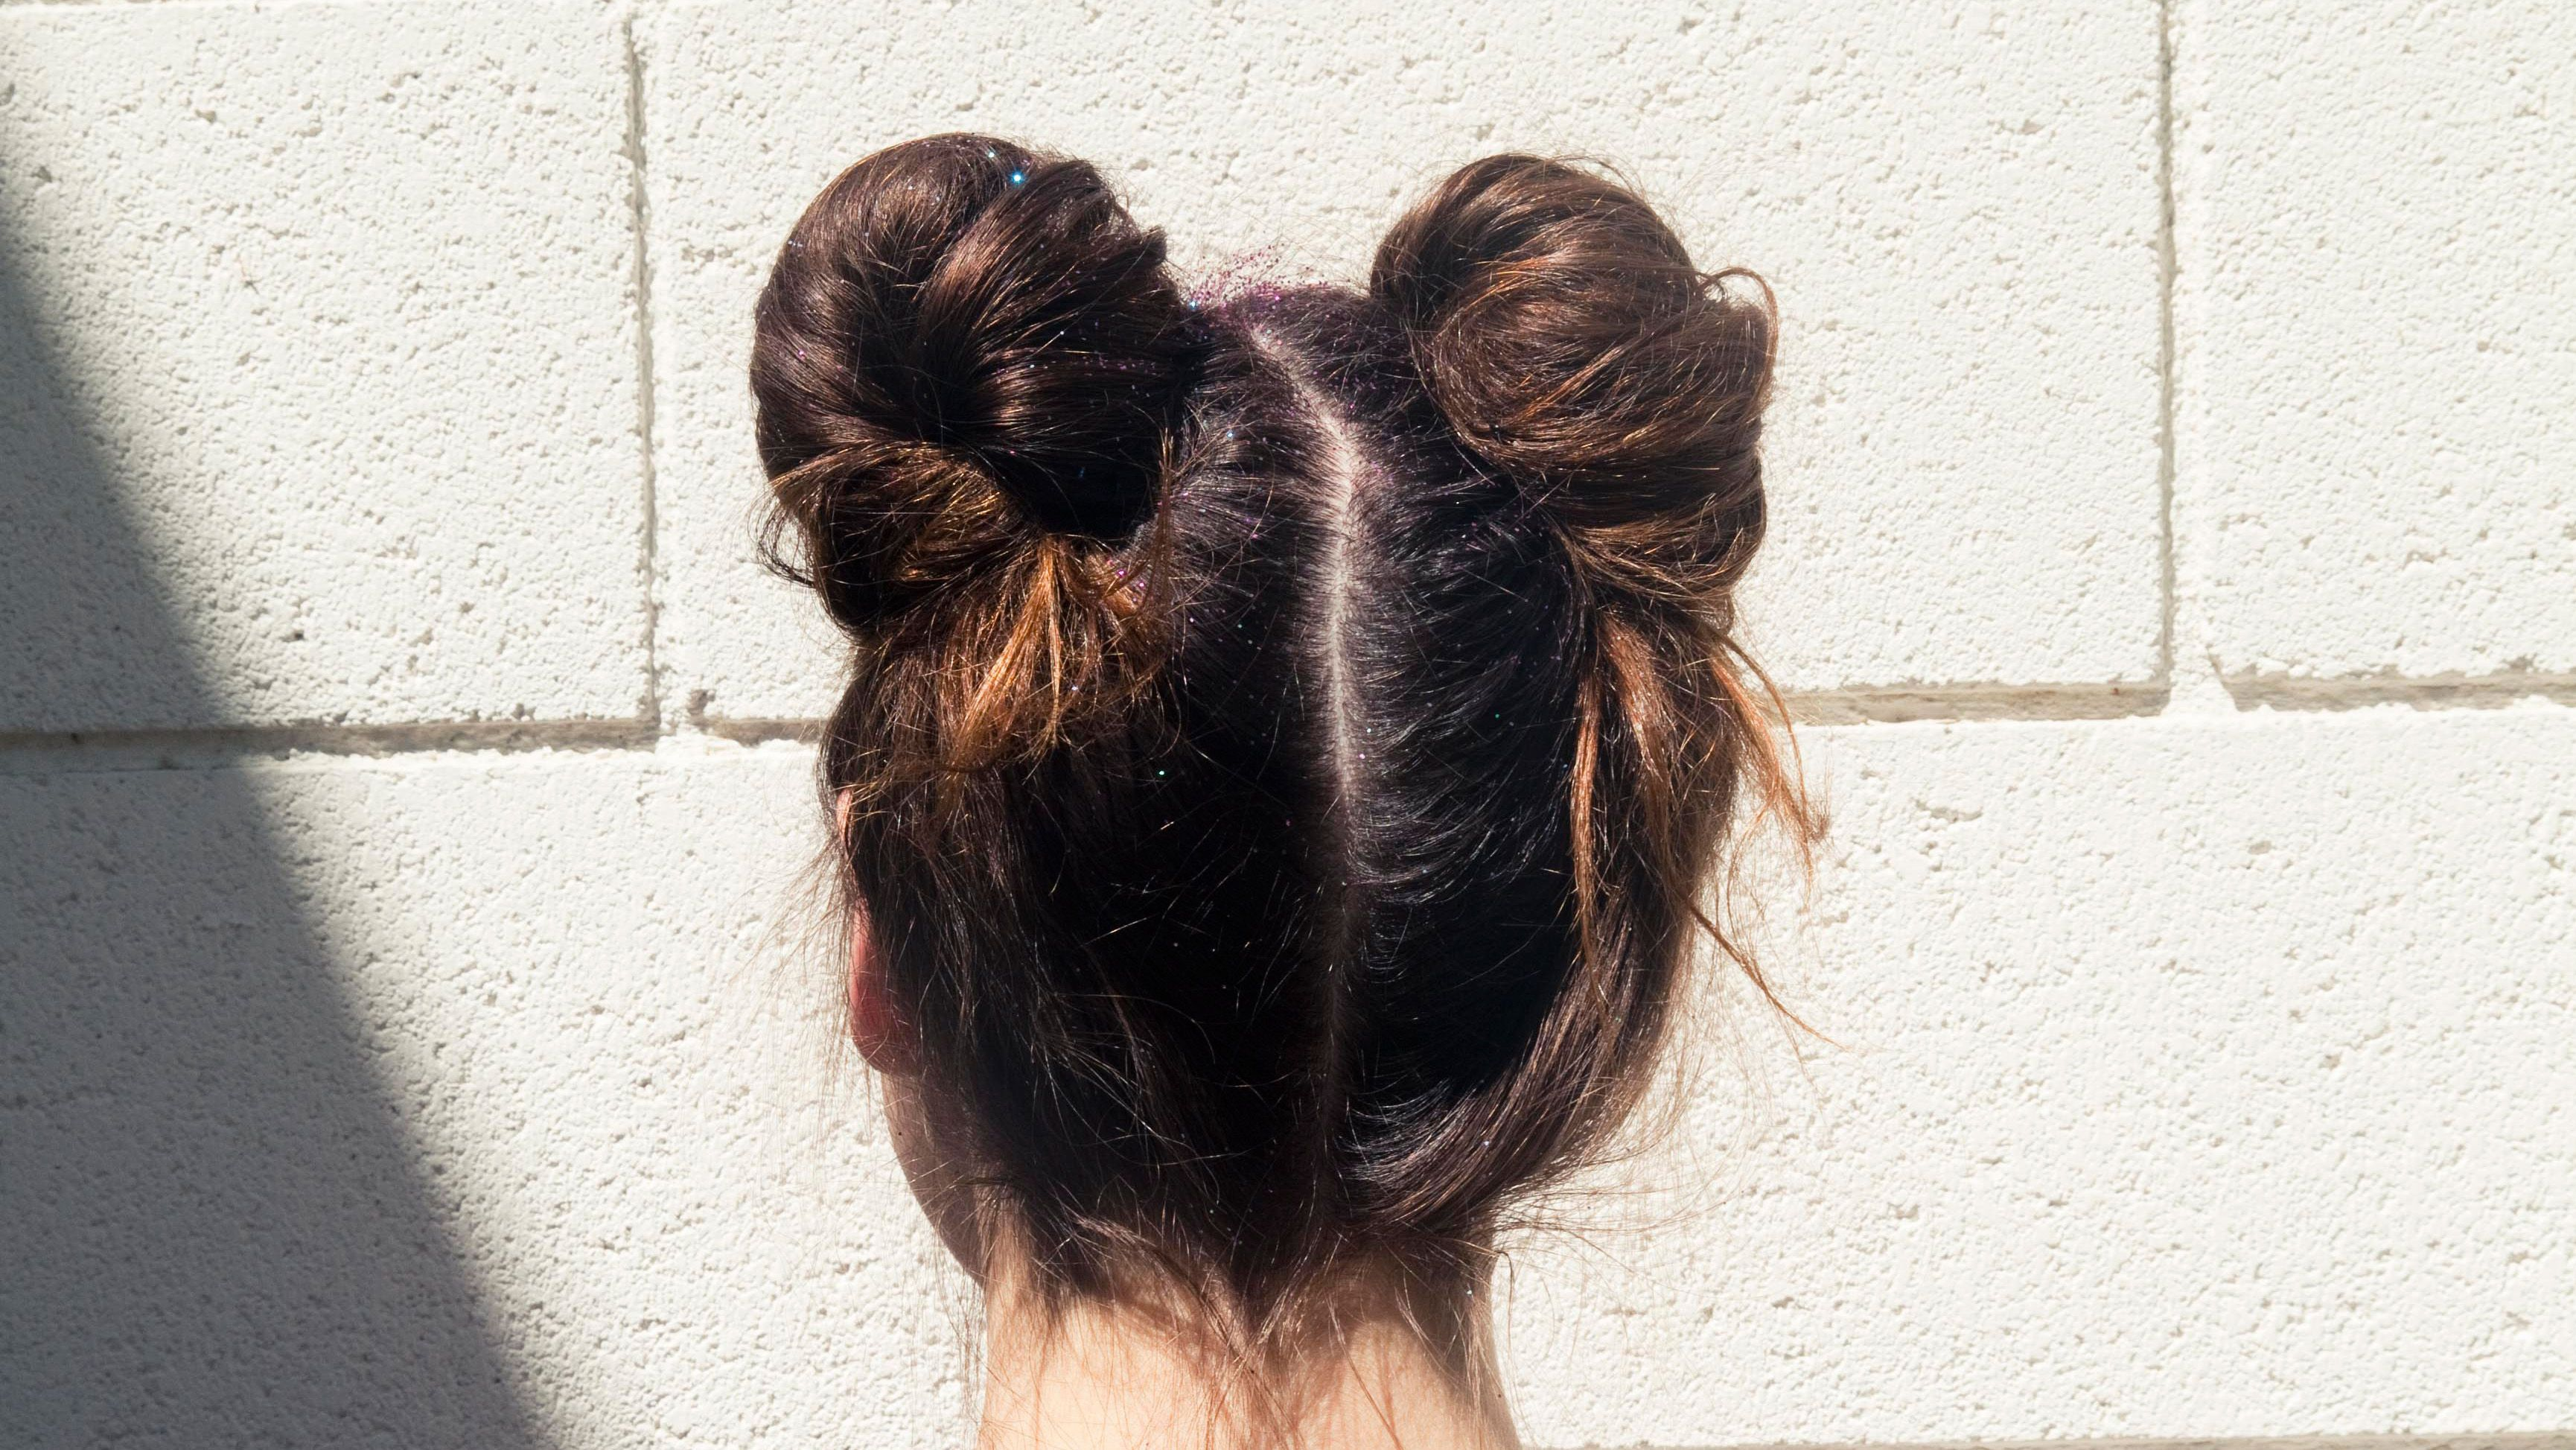 This '90s Hairstyle Is Back and Taking Over Instagram